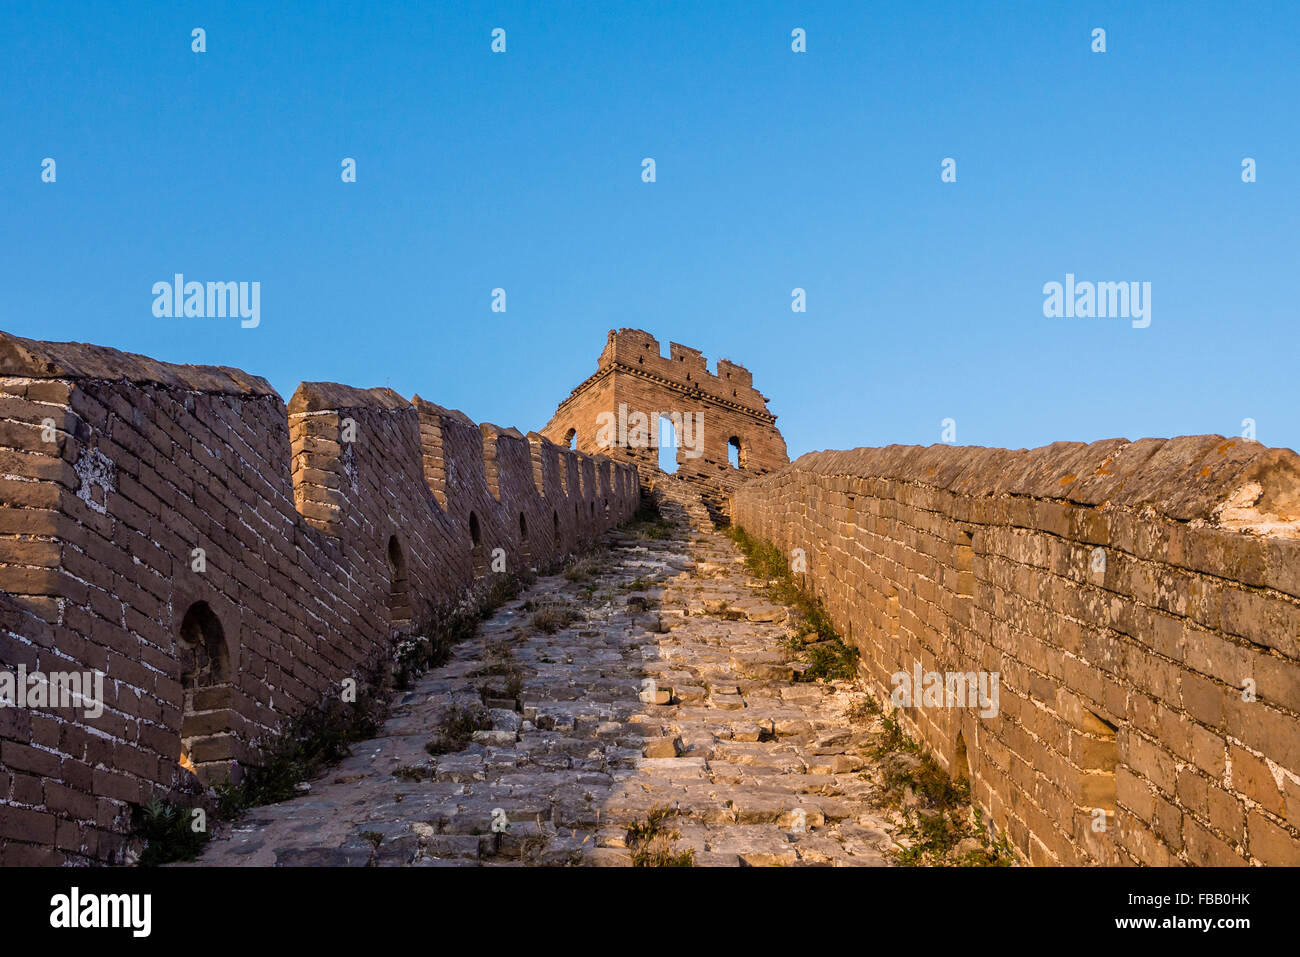 Jinshanling Great Wall,Hebei Province,China - Stock Image